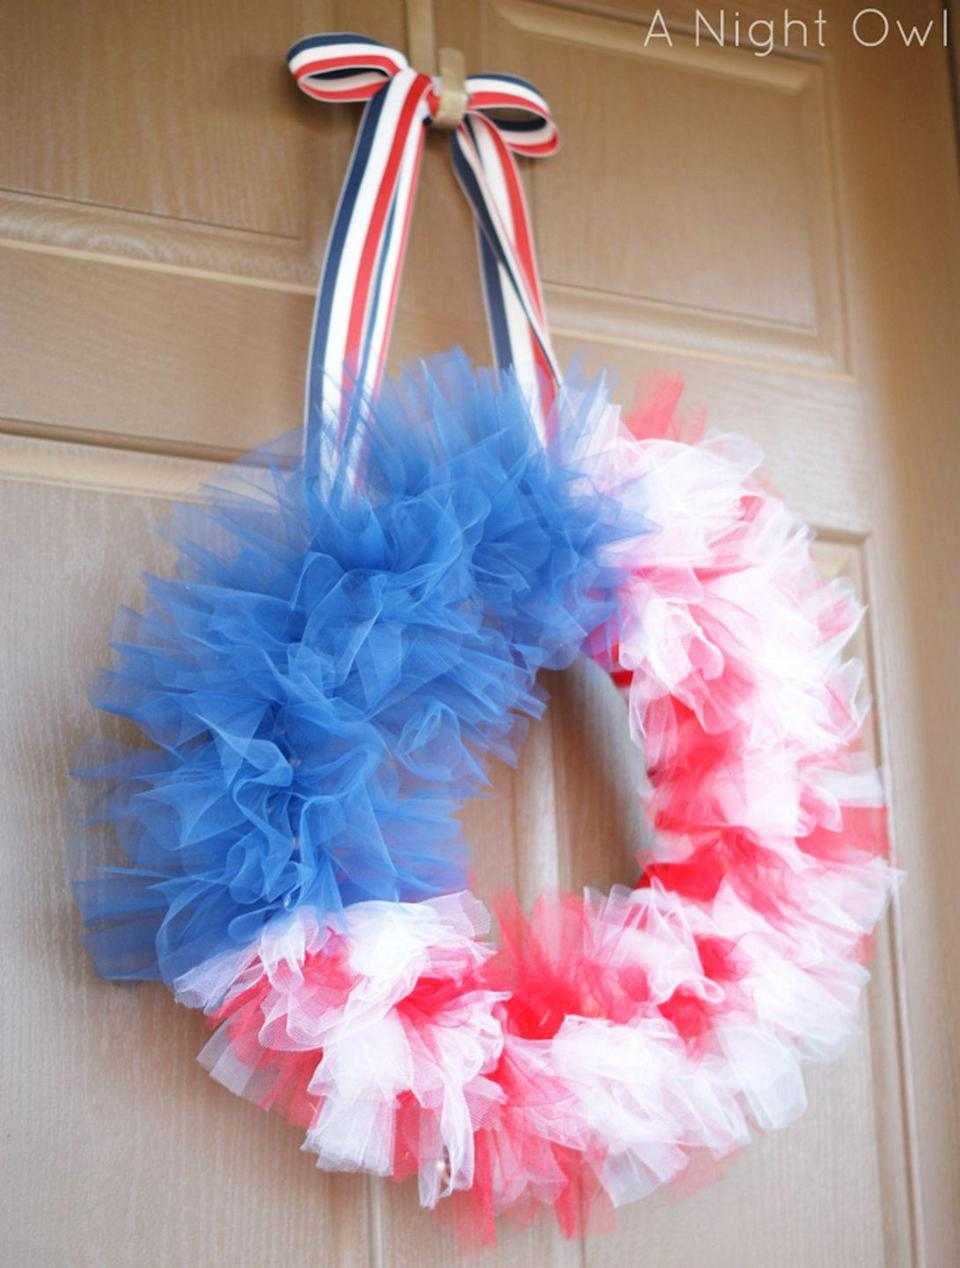 """<p>Enlist your kids to help tie strips of tulle around this wreath to make this patriotic decoration.</p><p><strong>Get the tutorial at <a href=""""https://www.anightowlblog.com/thrifty-thursday-a-memorial-day-tulle-flag-wreath-2/"""" rel=""""nofollow noopener"""" target=""""_blank"""" data-ylk=""""slk:A Night Owl"""" class=""""link rapid-noclick-resp"""">A Night Owl</a>.</strong></p><p><strong><a class=""""link rapid-noclick-resp"""" href=""""https://www.amazon.com/Supla-Rainbow-Netting-Scissors-Measuring/dp/B07D74YLGS/ref=sr_1_5?tag=syn-yahoo-20&ascsubtag=%5Bartid%7C10050.g.4464%5Bsrc%7Cyahoo-us"""" rel=""""nofollow noopener"""" target=""""_blank"""" data-ylk=""""slk:SHOP TULLE RIBBON"""">SHOP TULLE RIBBON </a></strong></p>"""